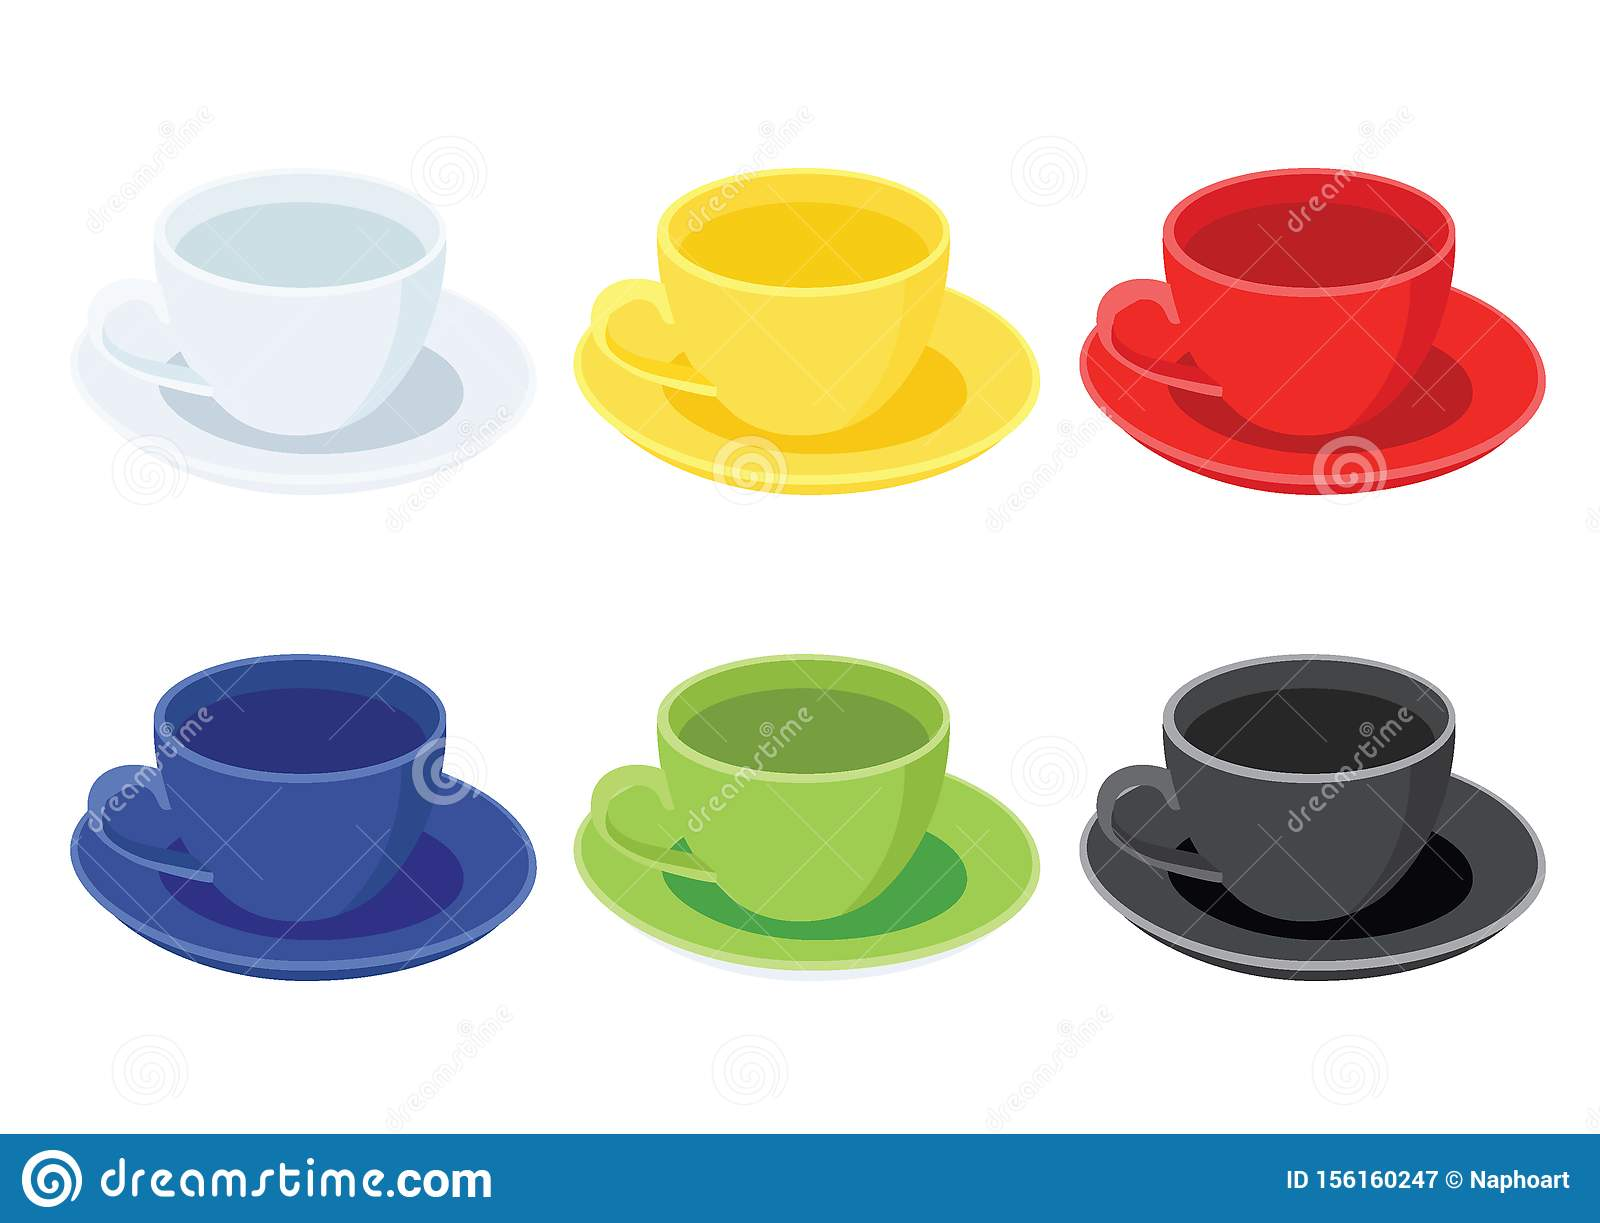 Coffee Cup On Saucer And Many Coffee Cups Multi Color White Yellow Red Blue Green Black Stock Illustration Illustration Of Cafacopy Decoration 156160247